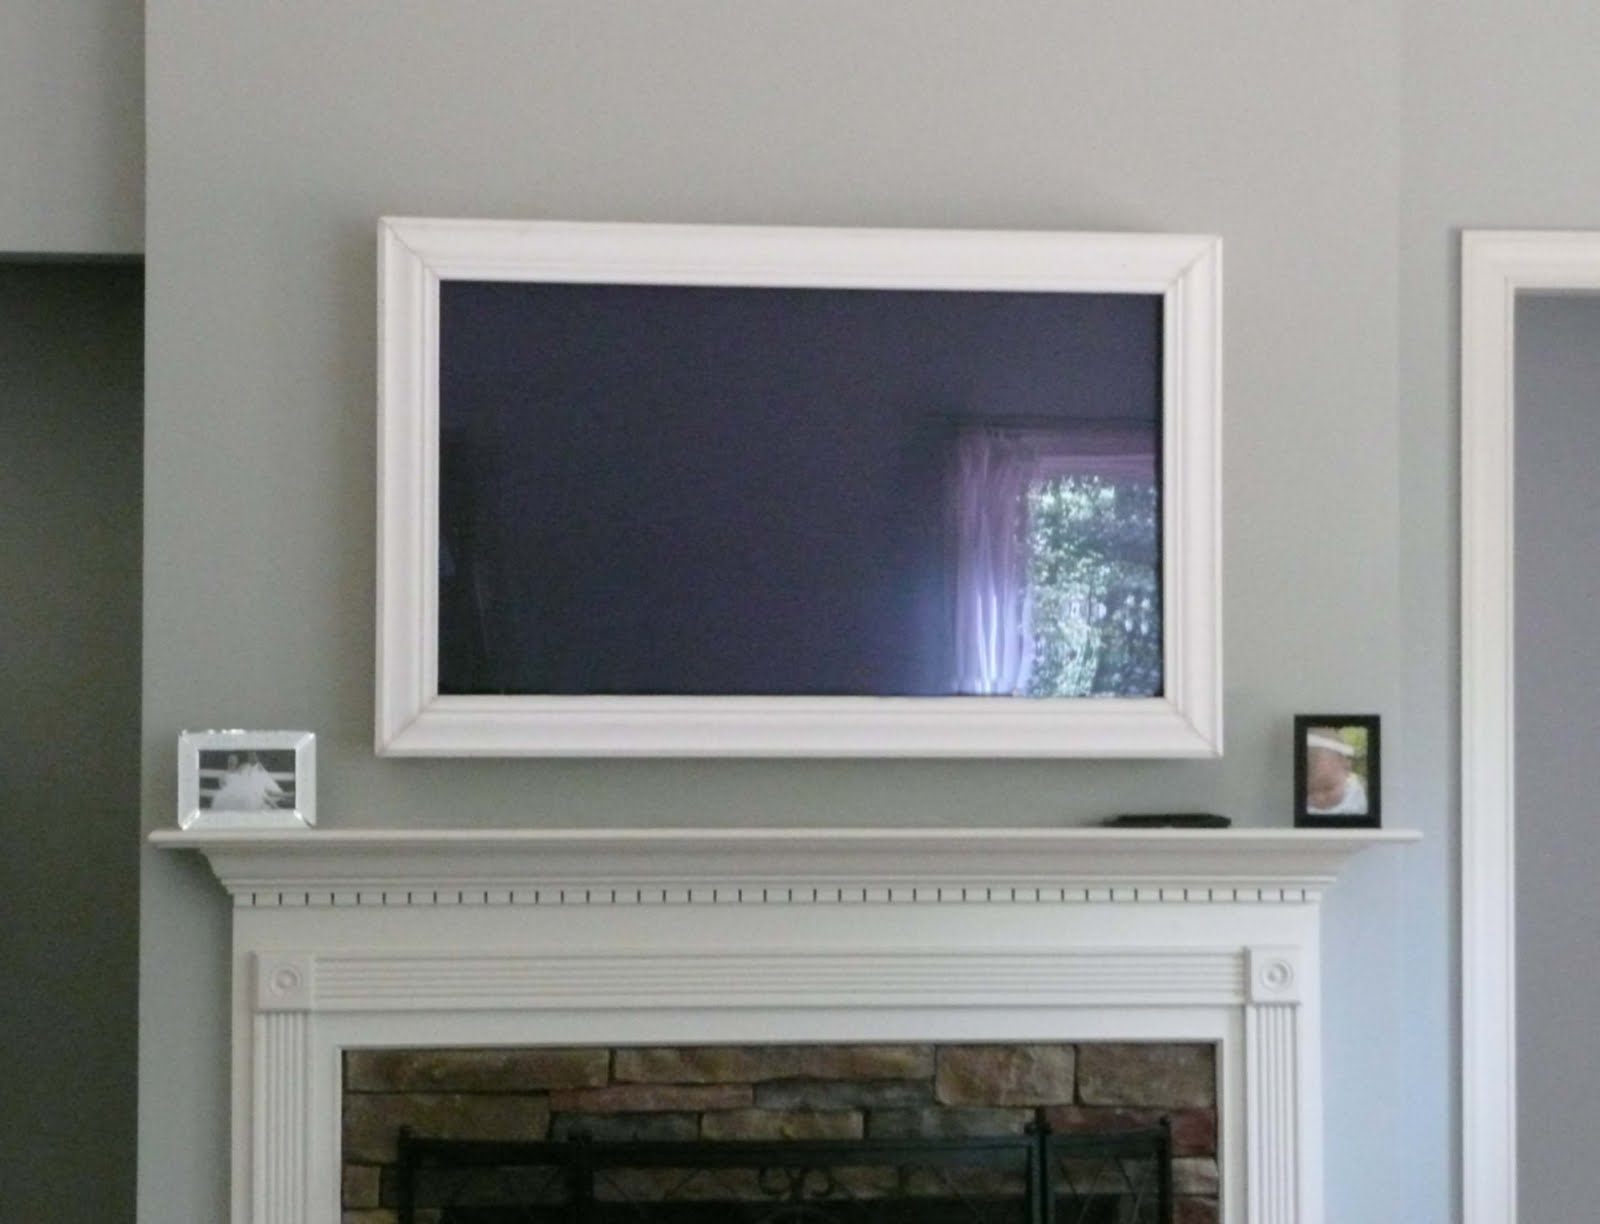 16 Tv Picture Frame Wall Mount Ideas